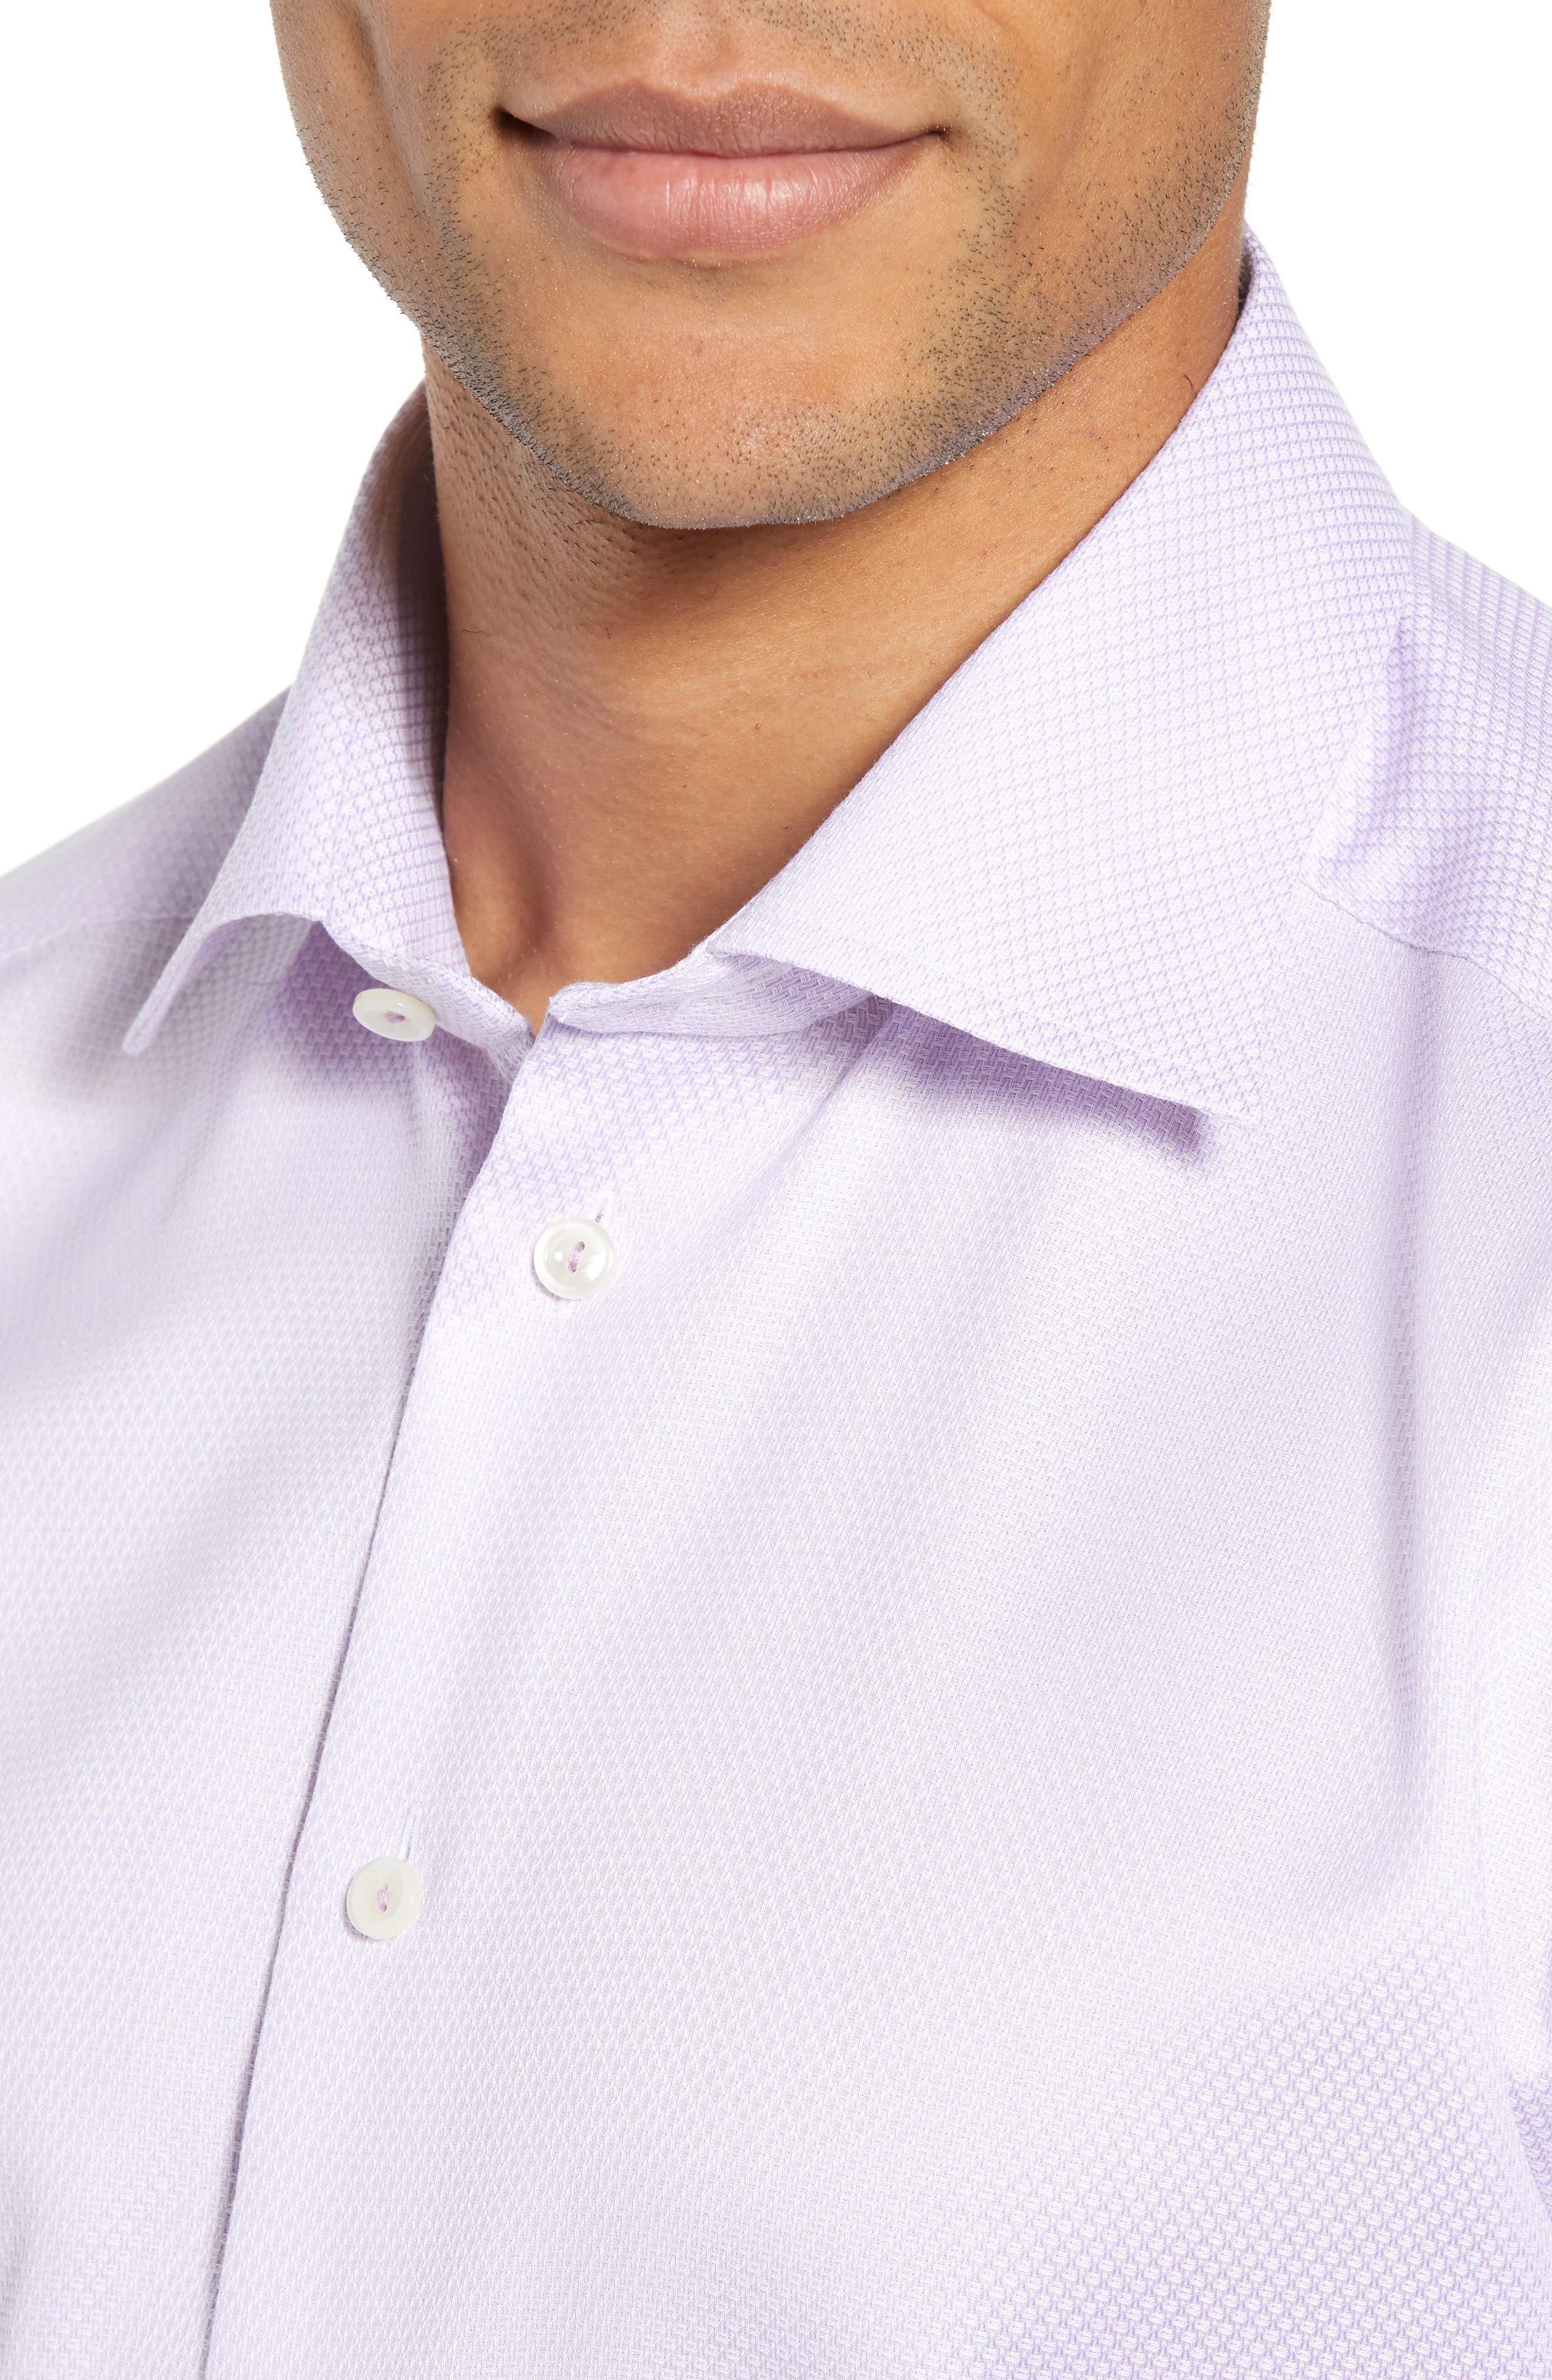 Slim Fit Textured Solid Dress Shirt,                             Alternate thumbnail 2, color,                             PURPLE